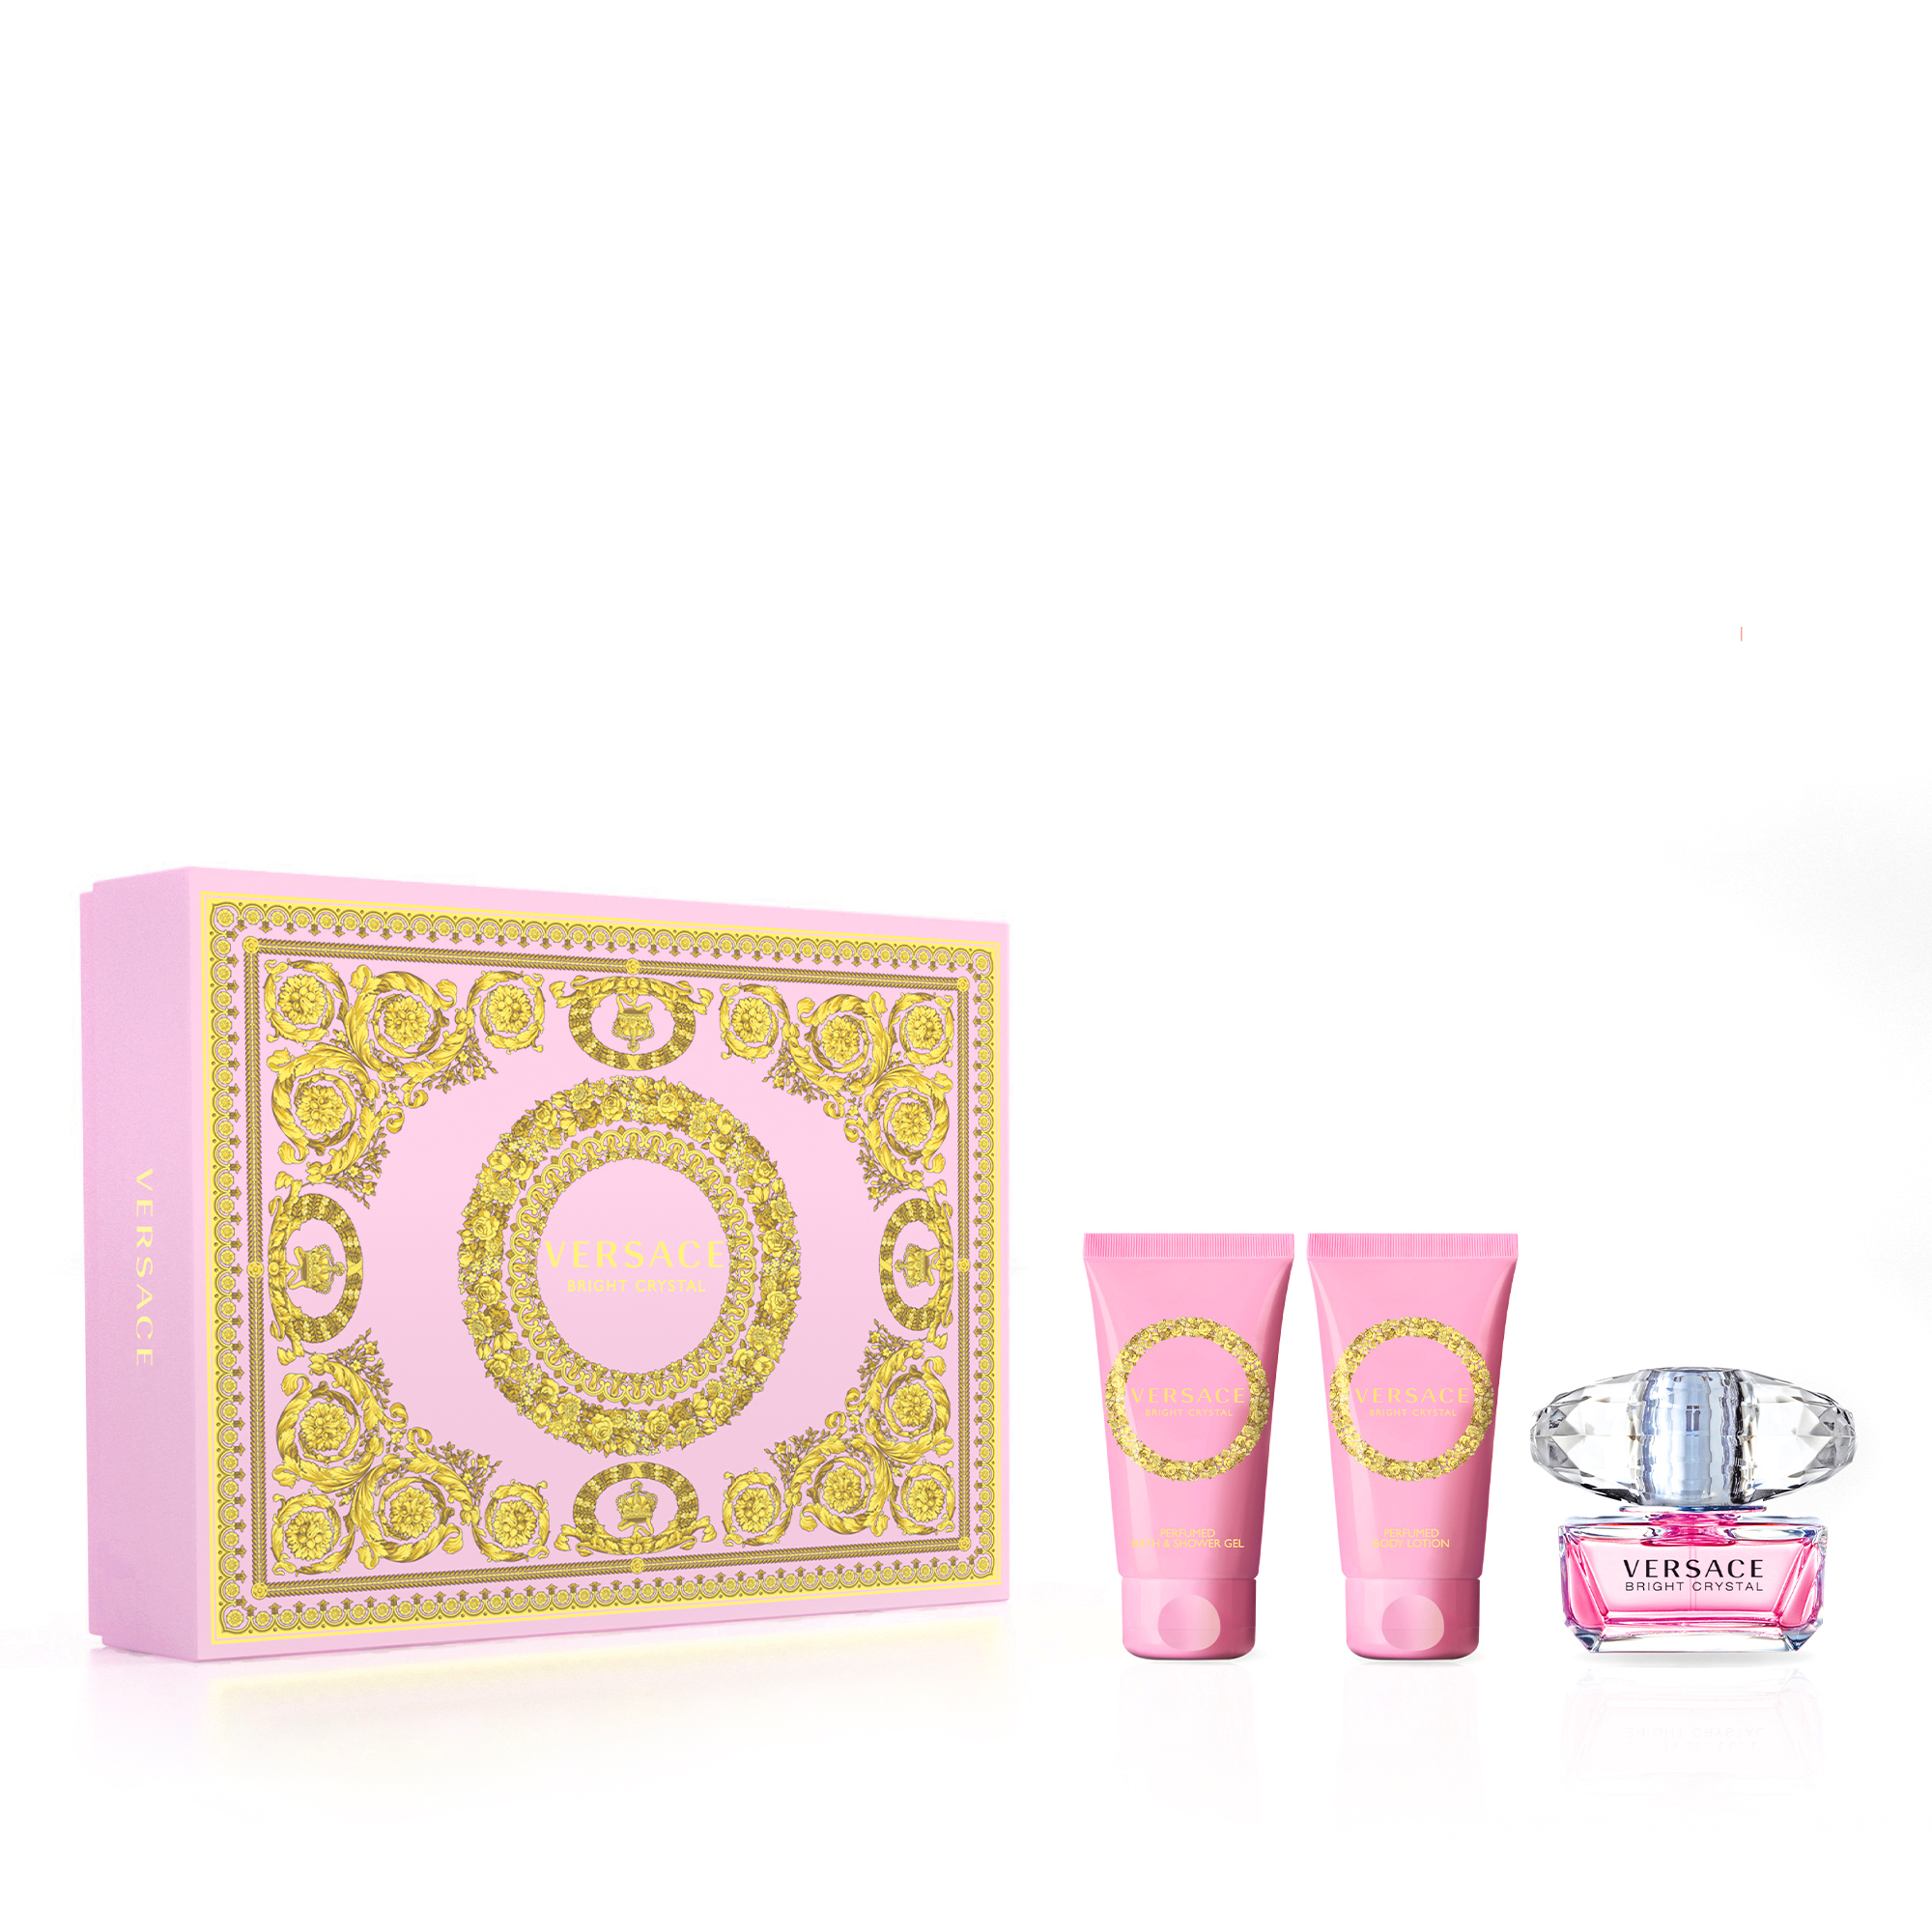 Versace Bright Crystal EDT 50ml Gift Set 2020